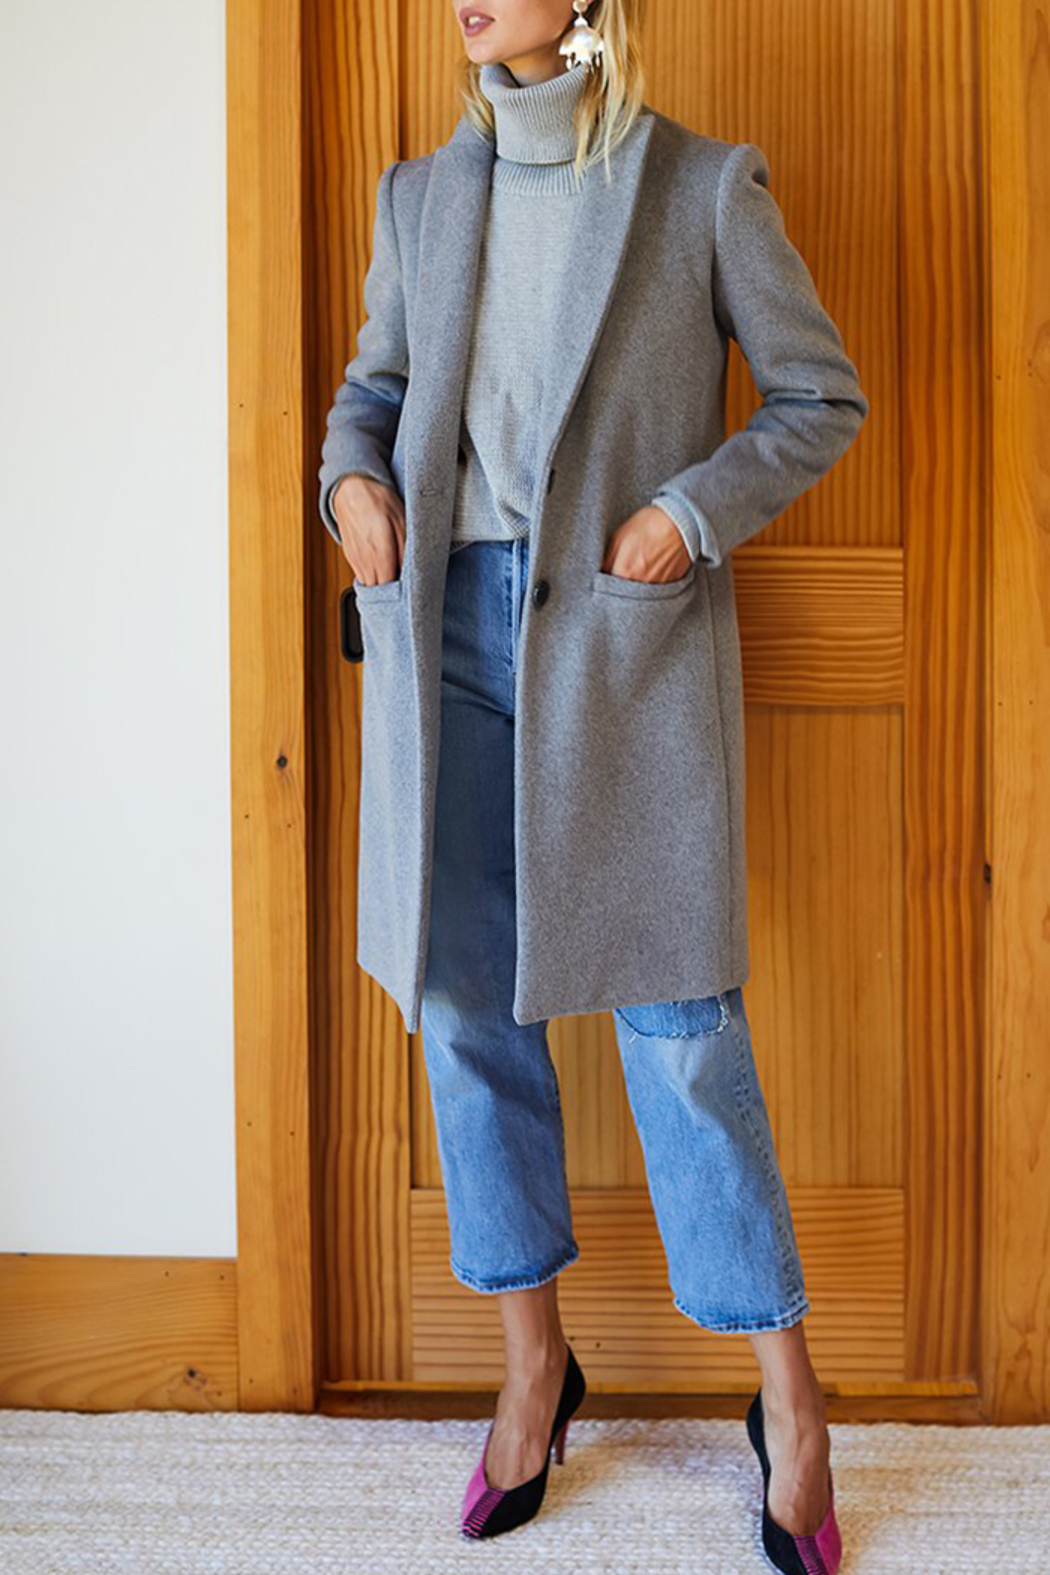 Emerson Fry Tailored Wool Coat - Side Cropped Image